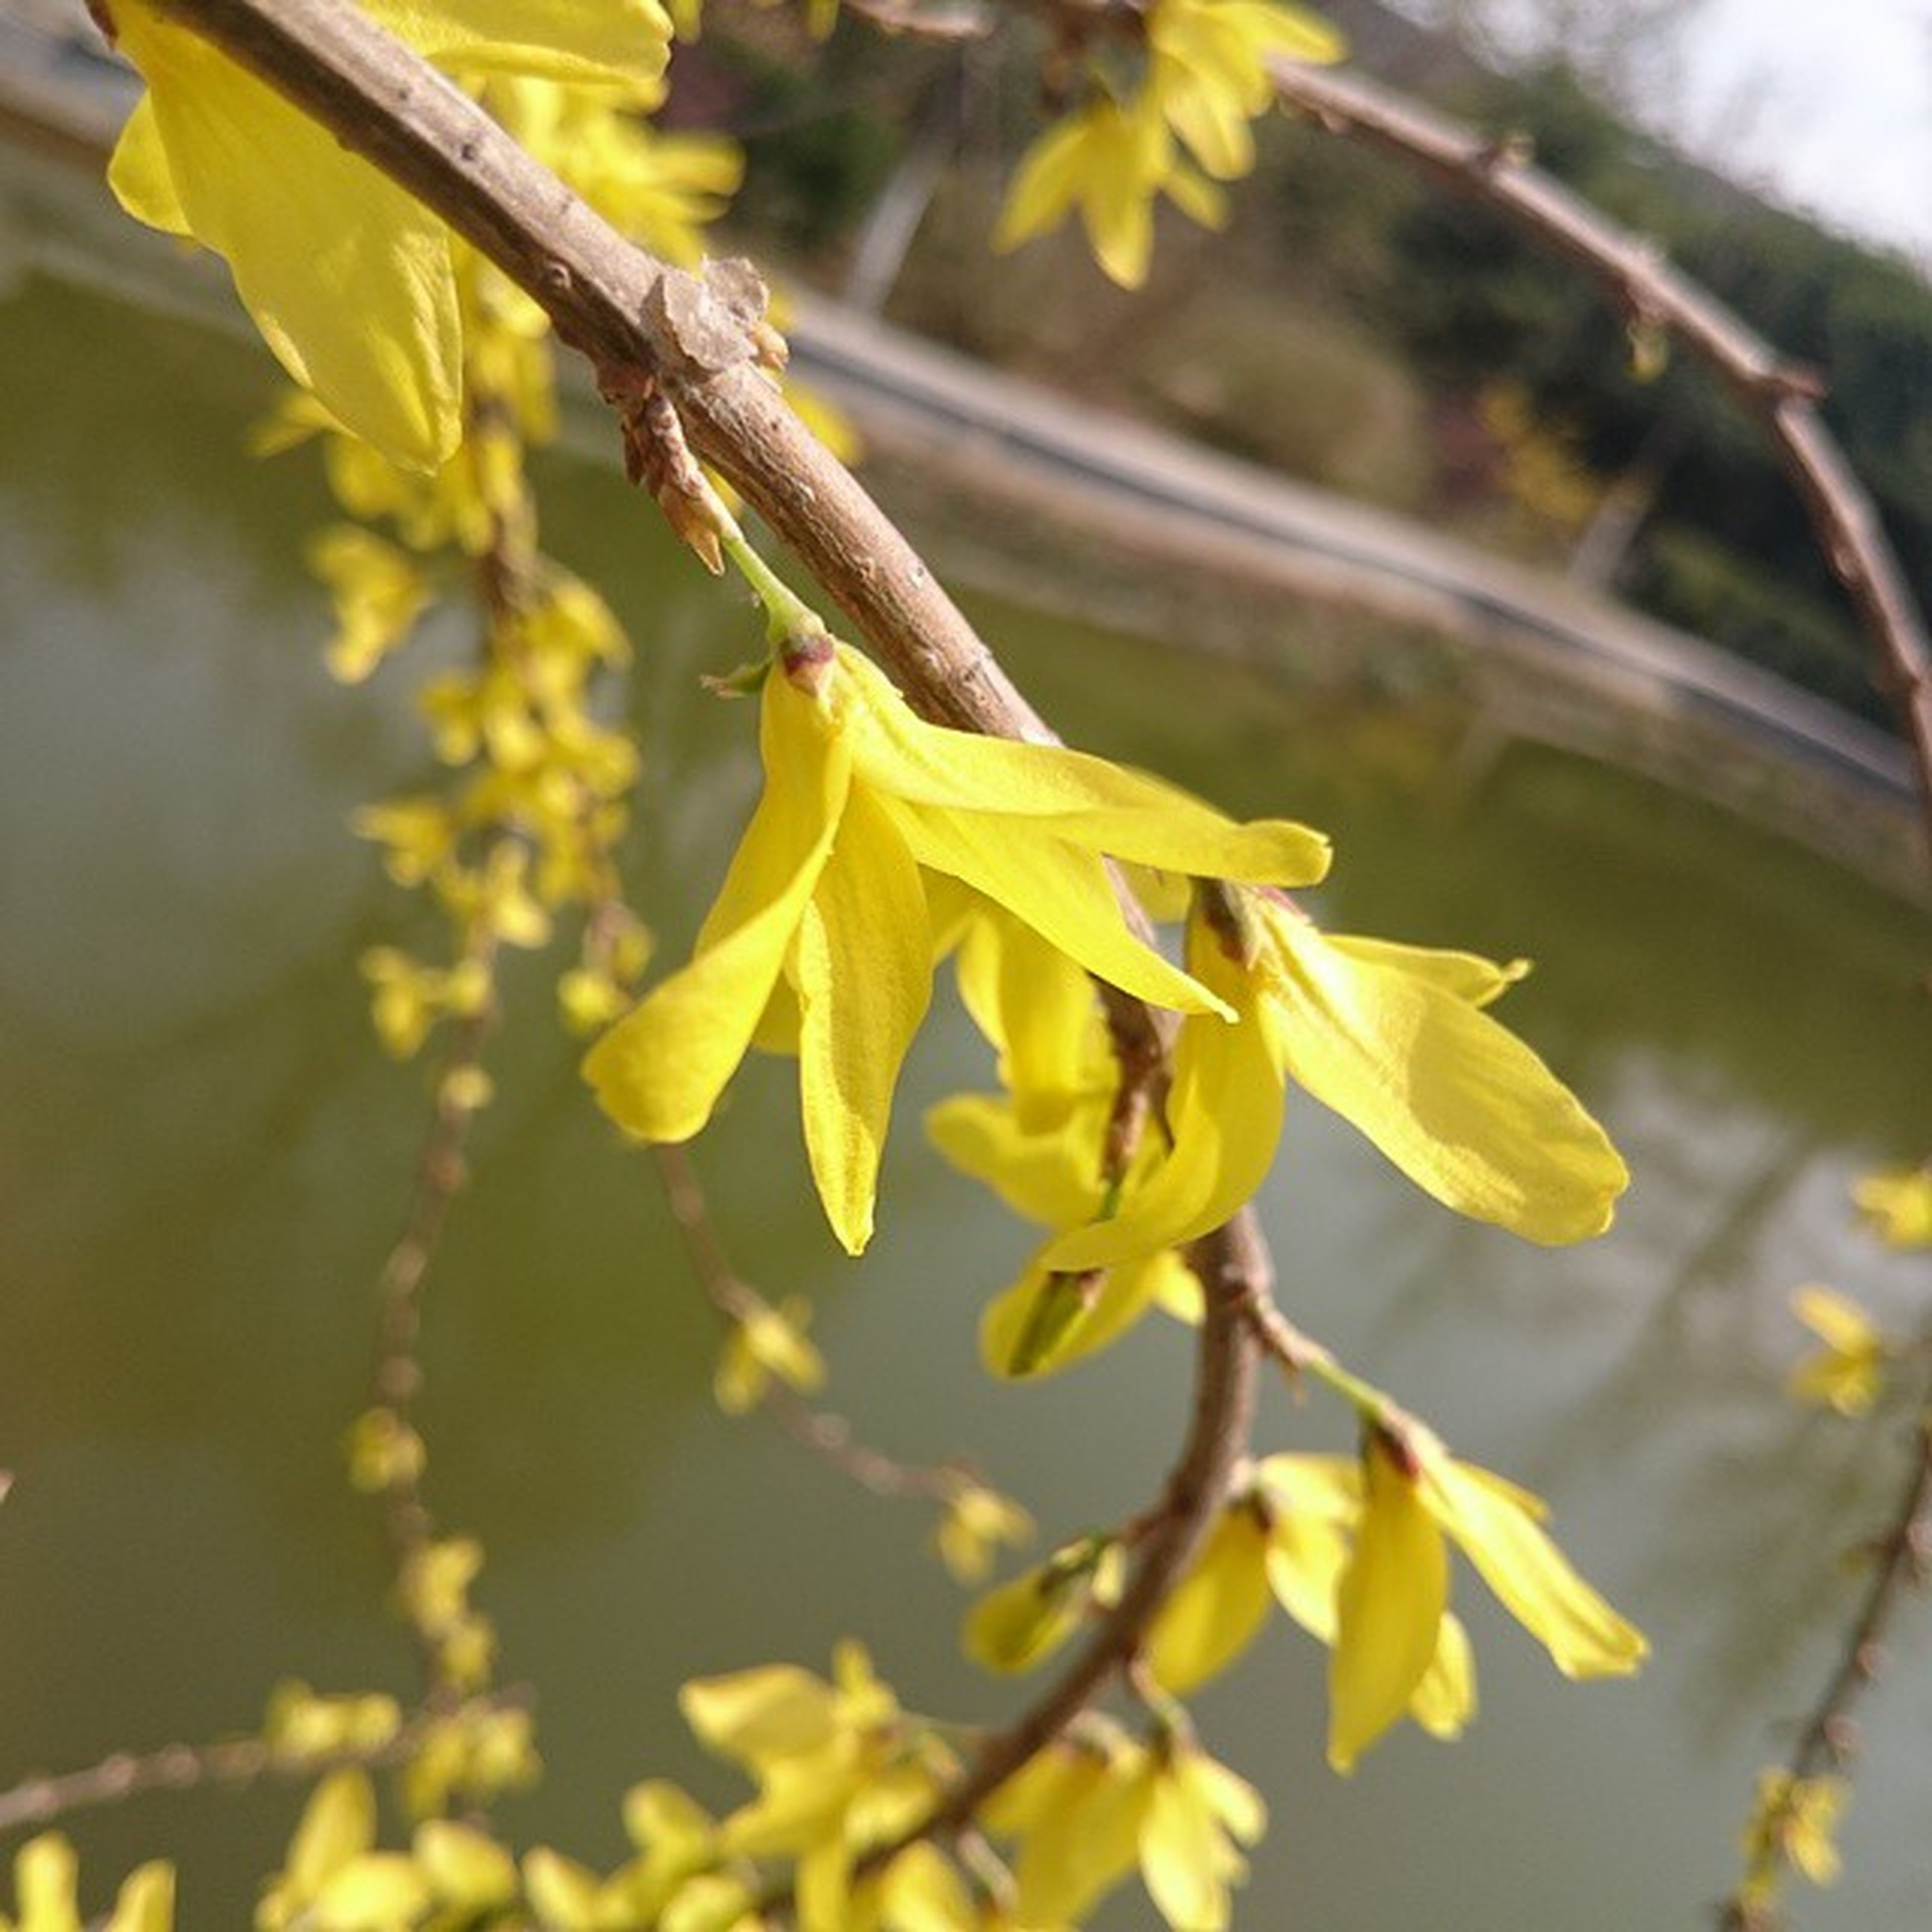 yellow, flower, growth, focus on foreground, freshness, close-up, nature, beauty in nature, fragility, petal, branch, plant, leaf, selective focus, tree, day, outdoors, stem, twig, no people